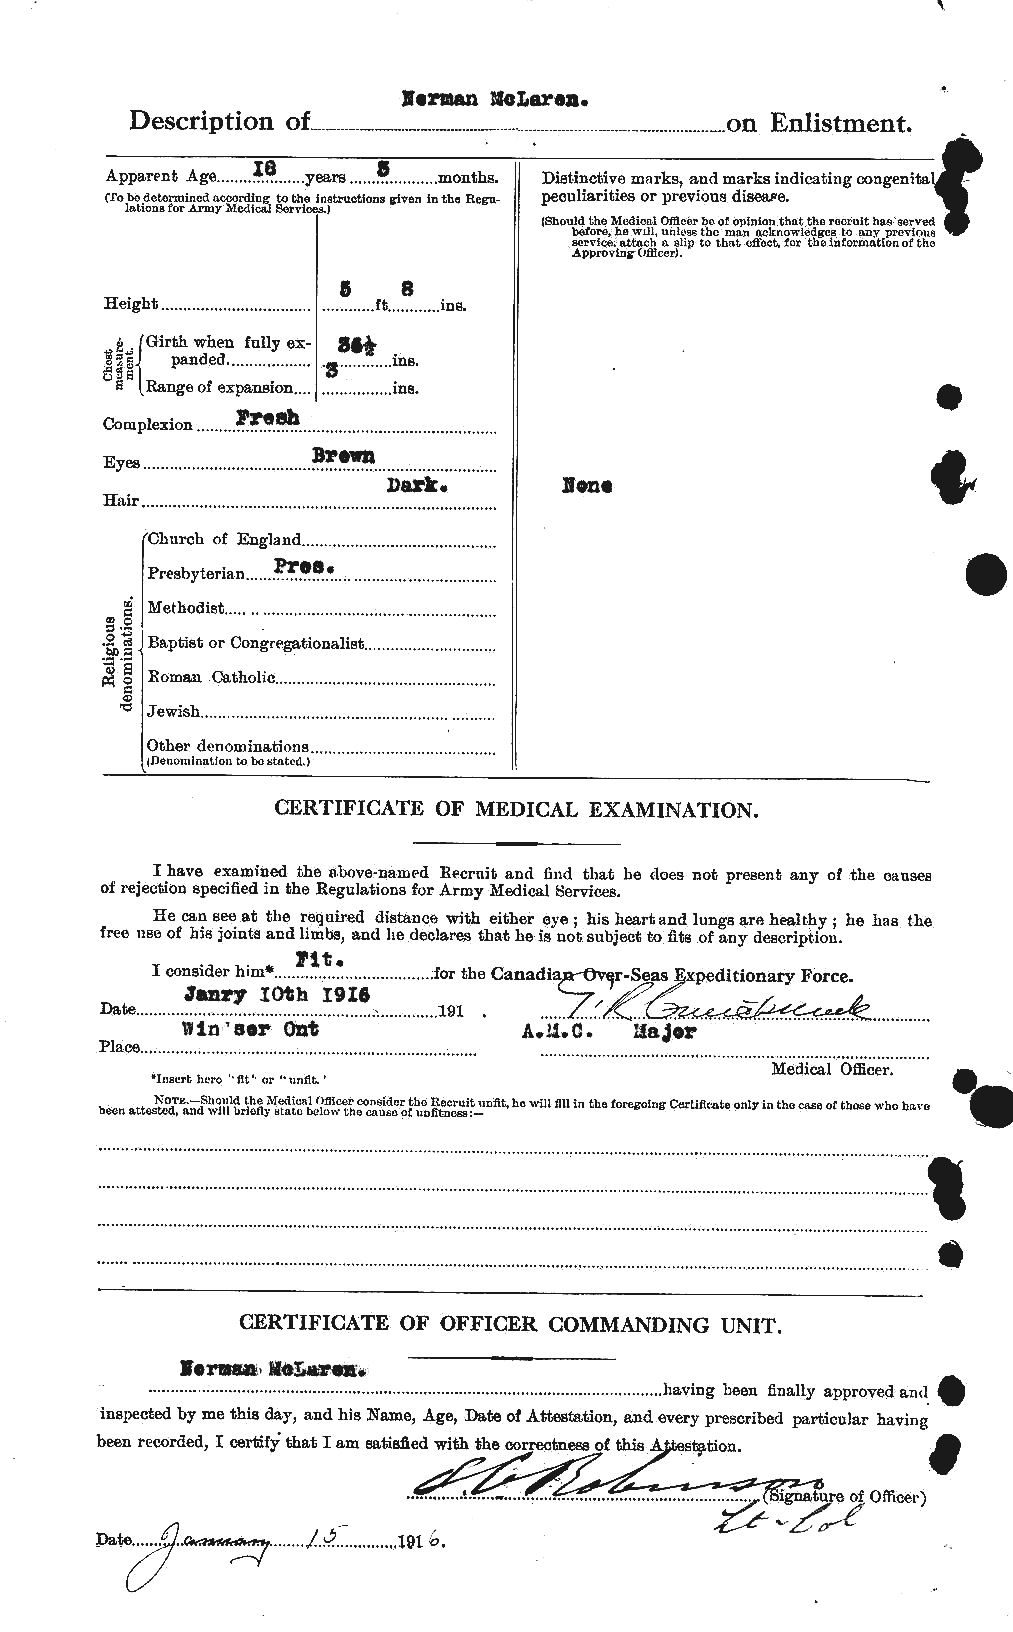 Attestation Paper (page 2)